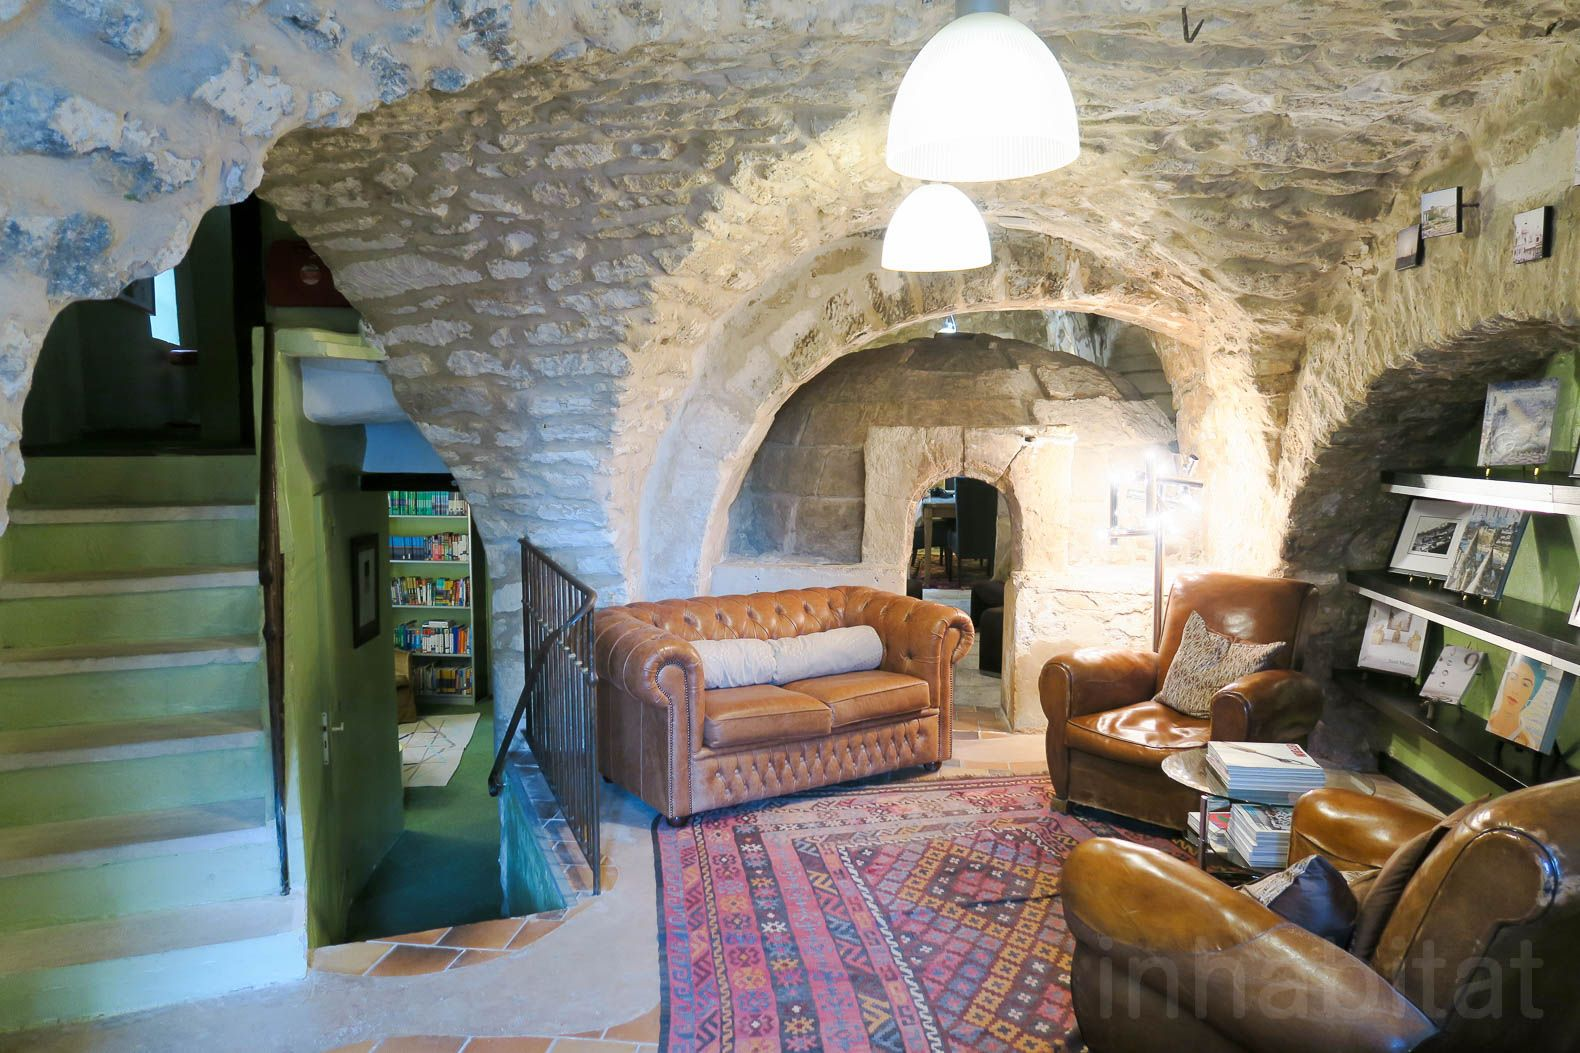 Medieval village ruins converted into an art school unveil past secrets